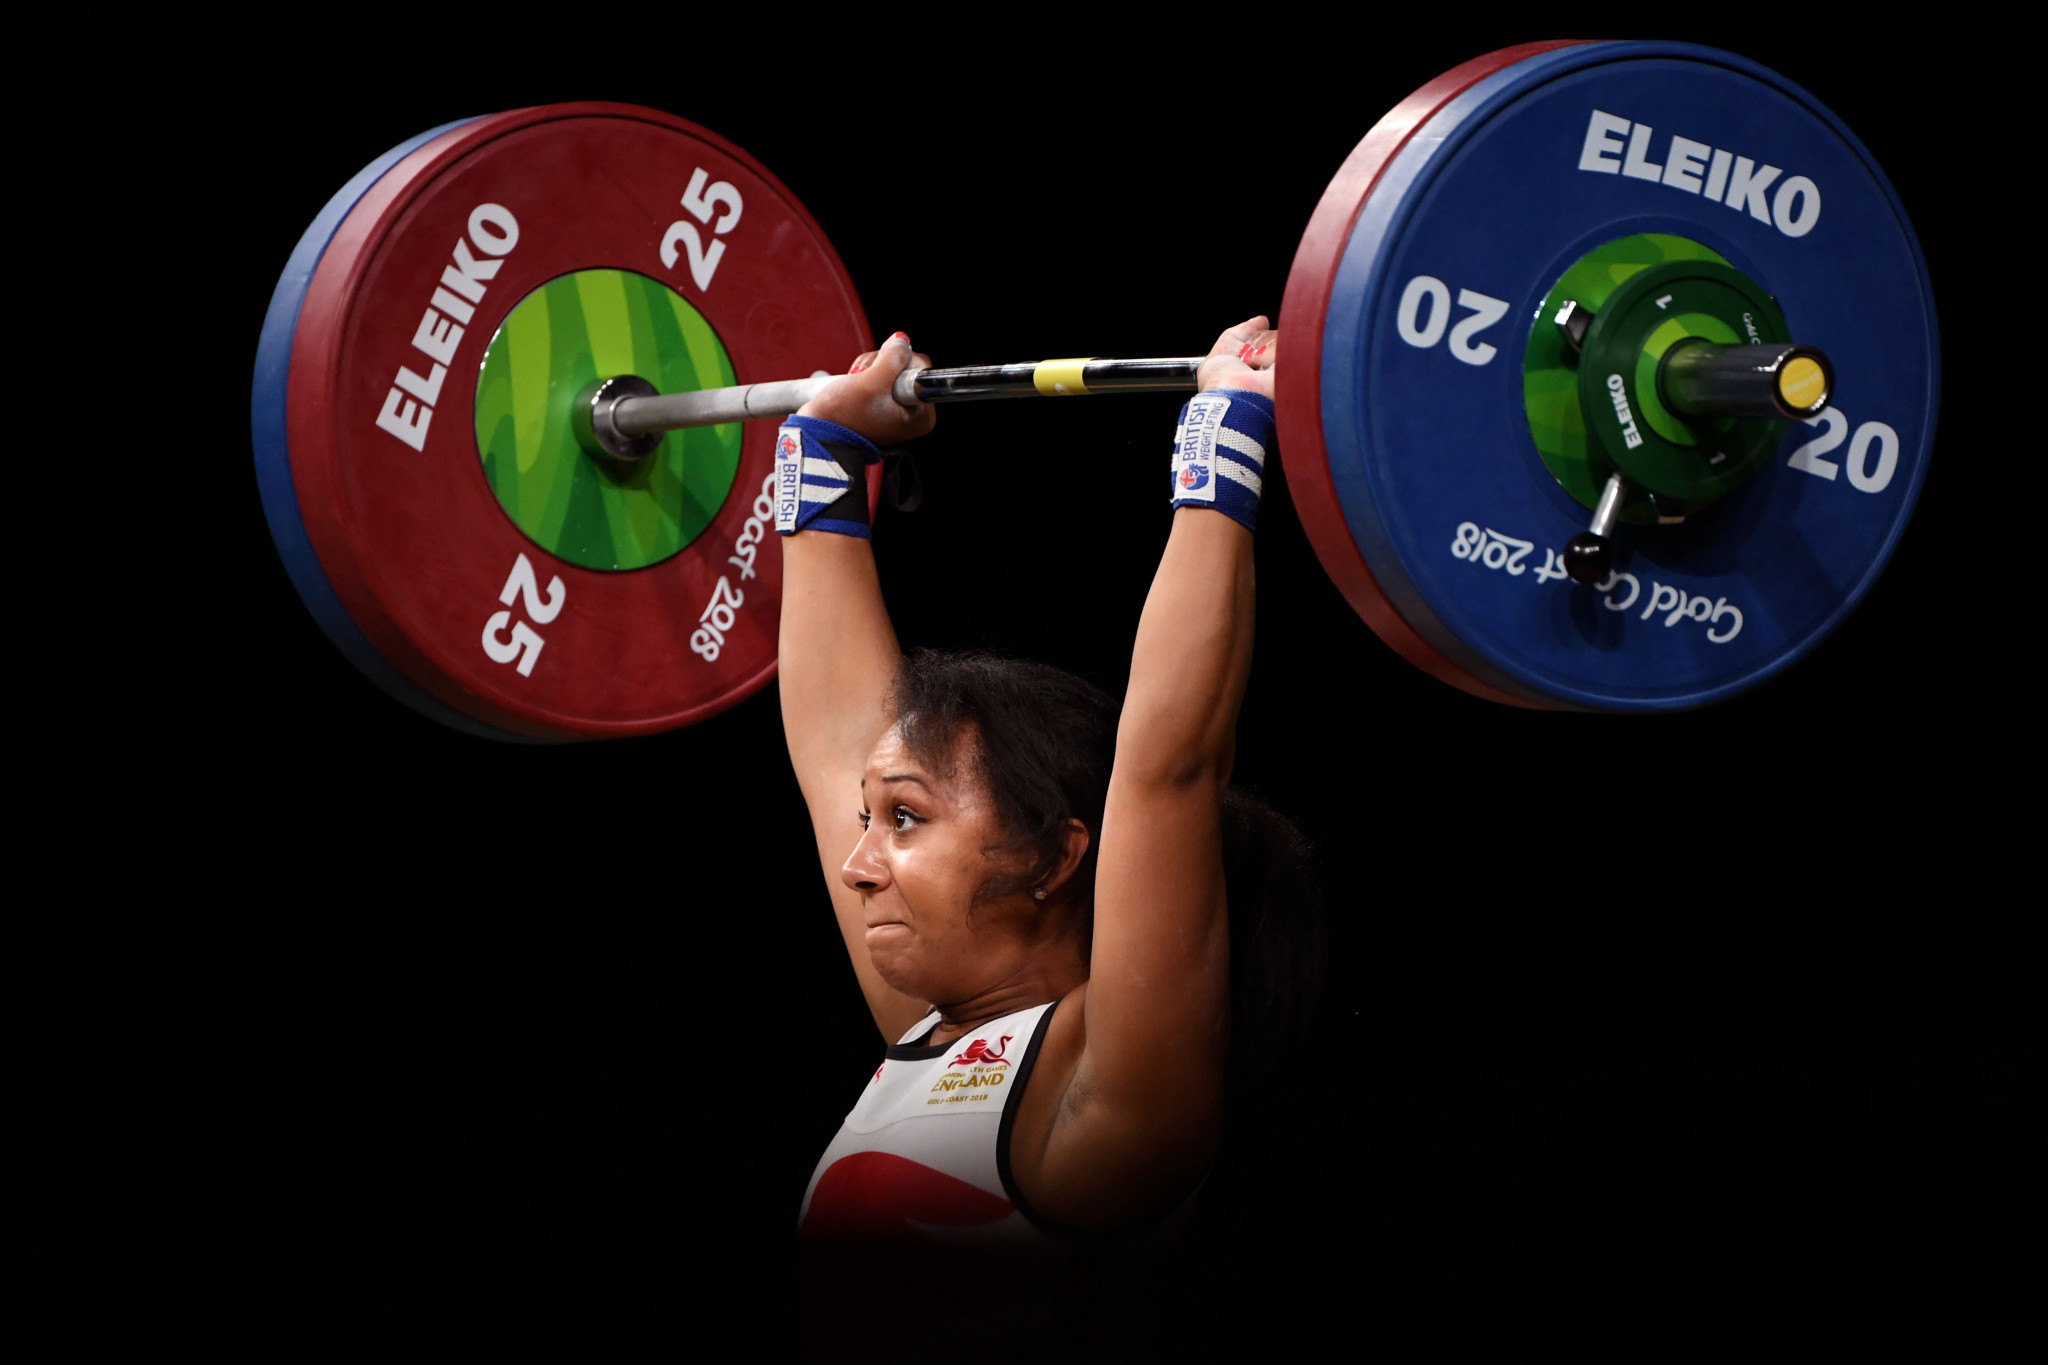 Britain's Zoe Smith won a European bronze medal last year, and Urso says more countries appearing on weightlifting podiums would be a positive thing for the sport ©Getty Images